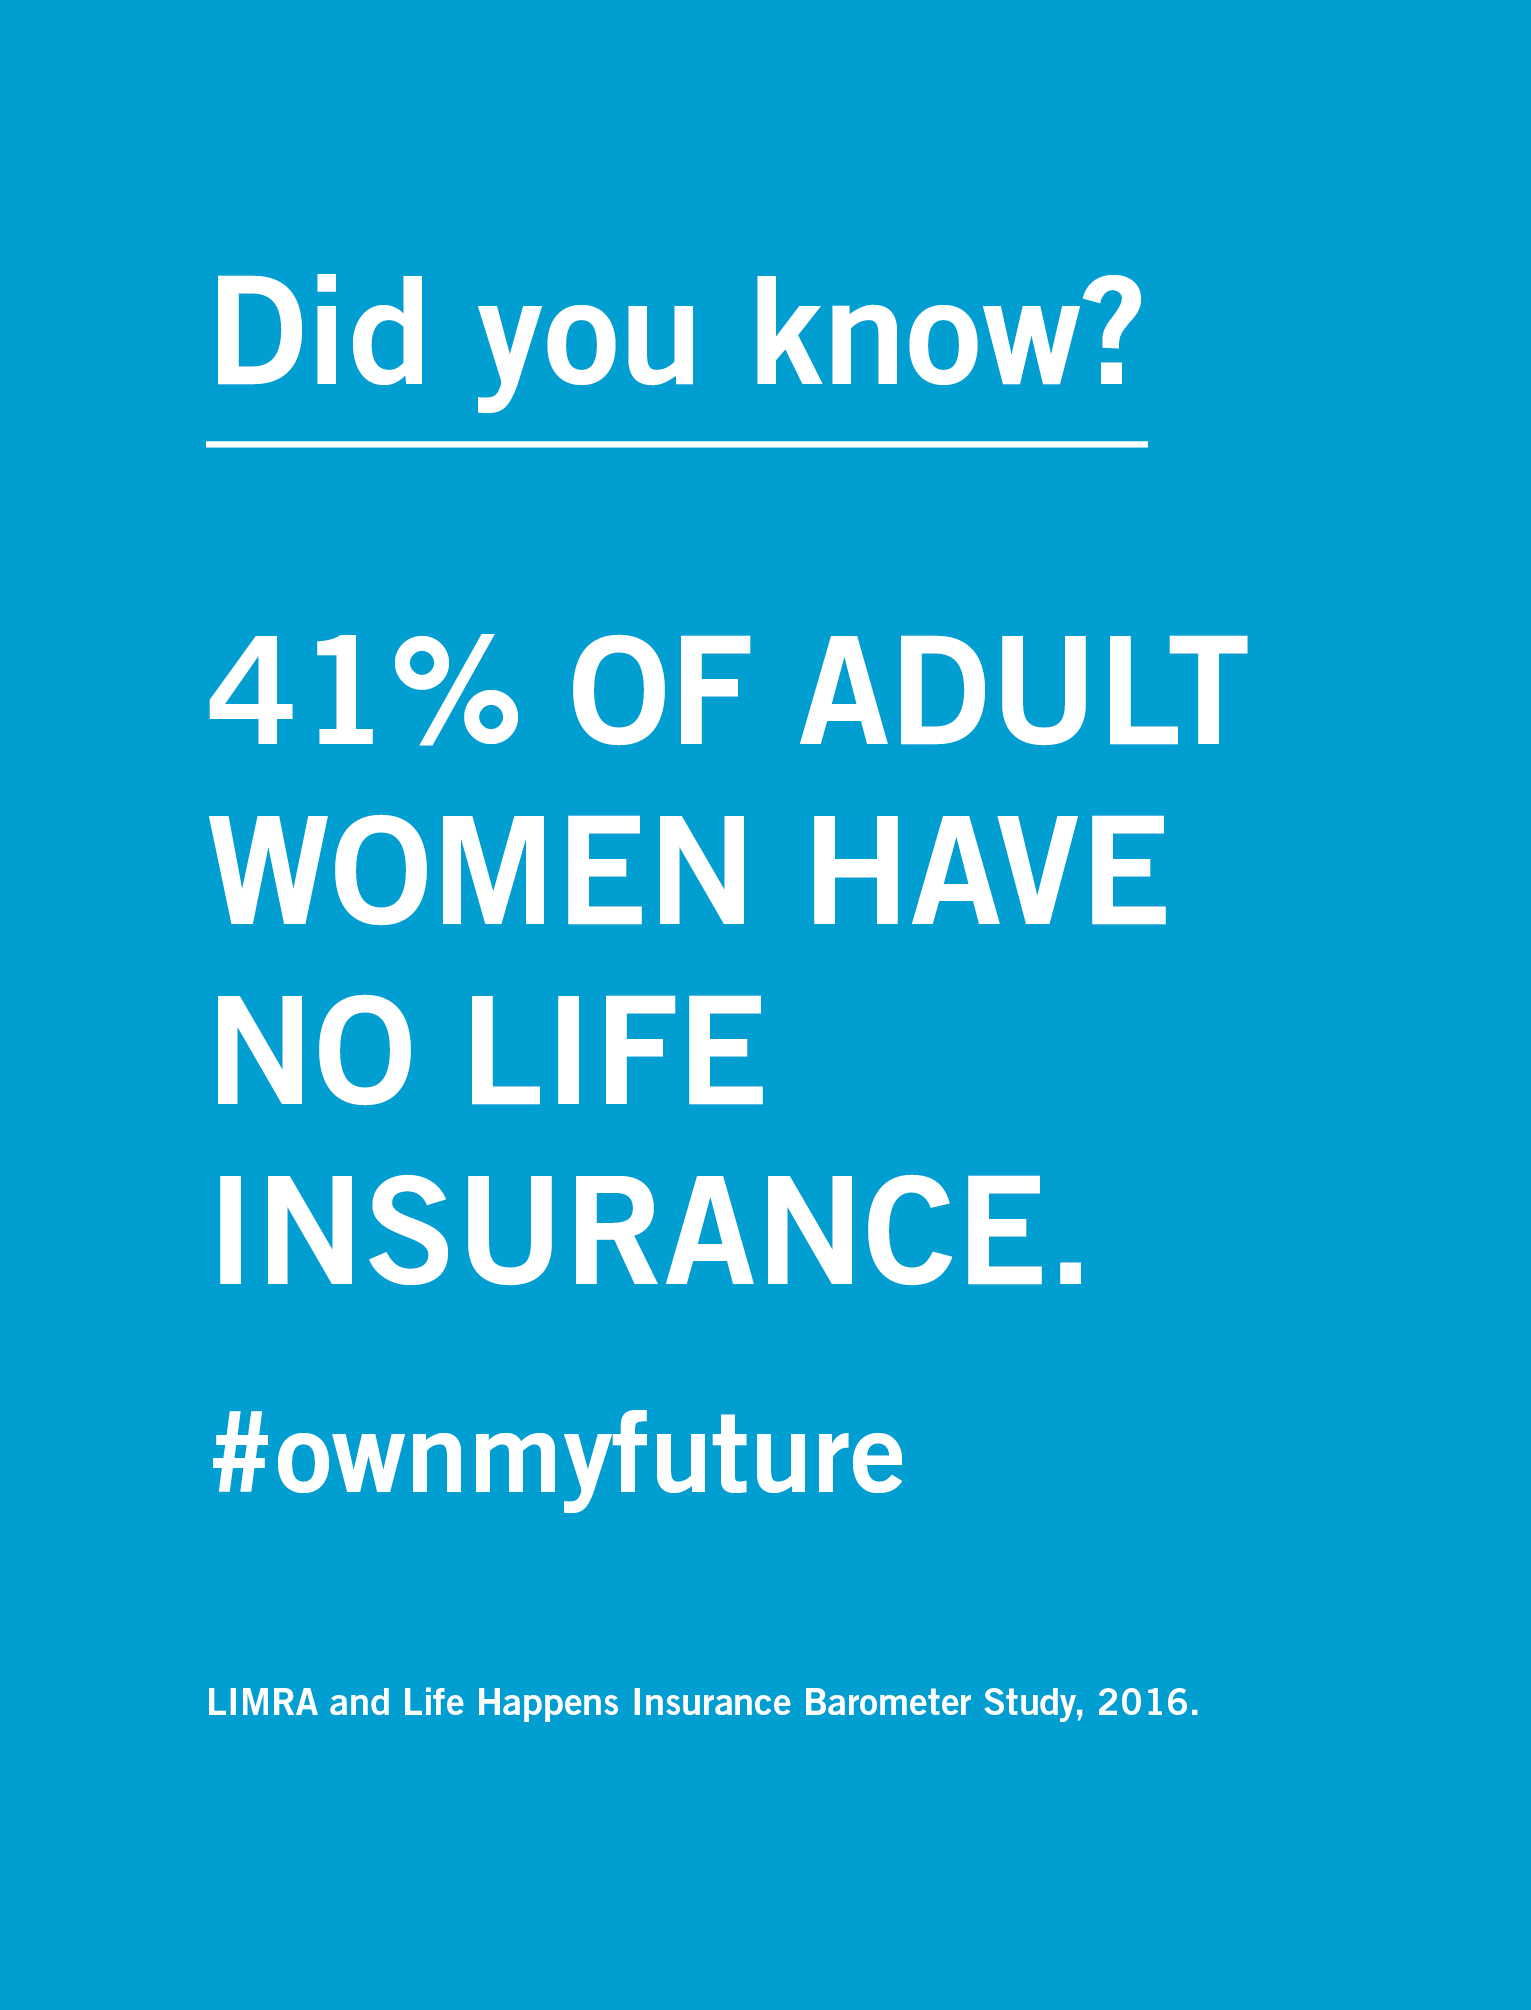 Quotes About Life Insurance Life Insurance Isn't Just About Covering The Loss Of Your Salary